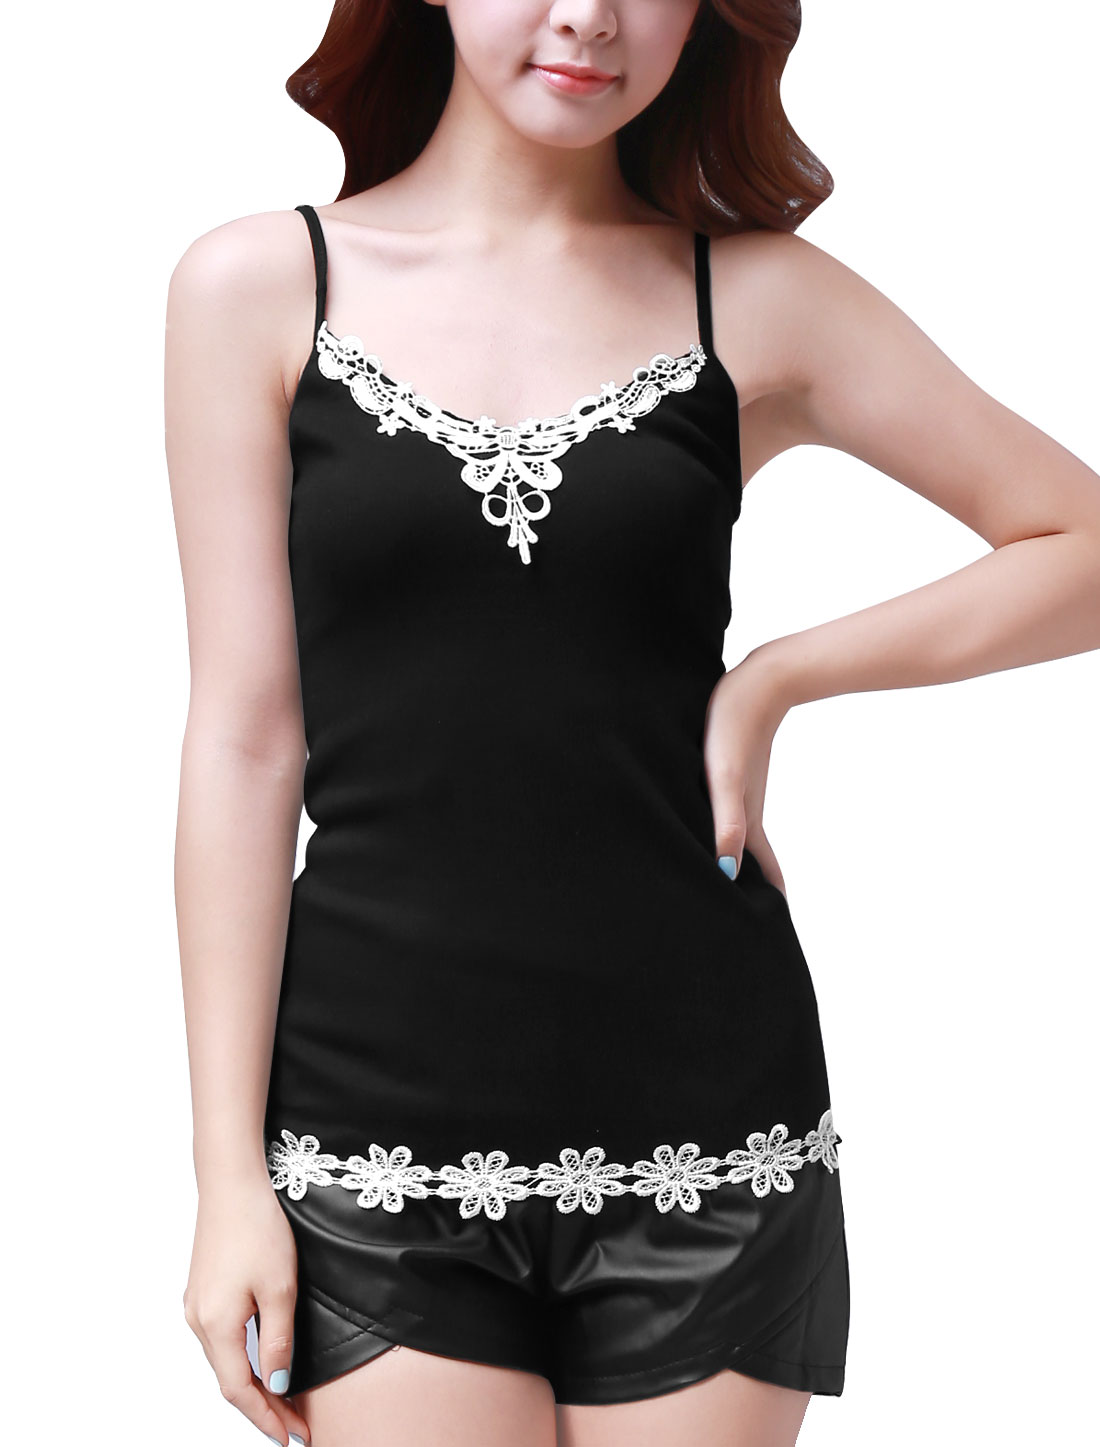 Lace Scoop Neck Black Stretchy Pullover Tank Top XS for Women